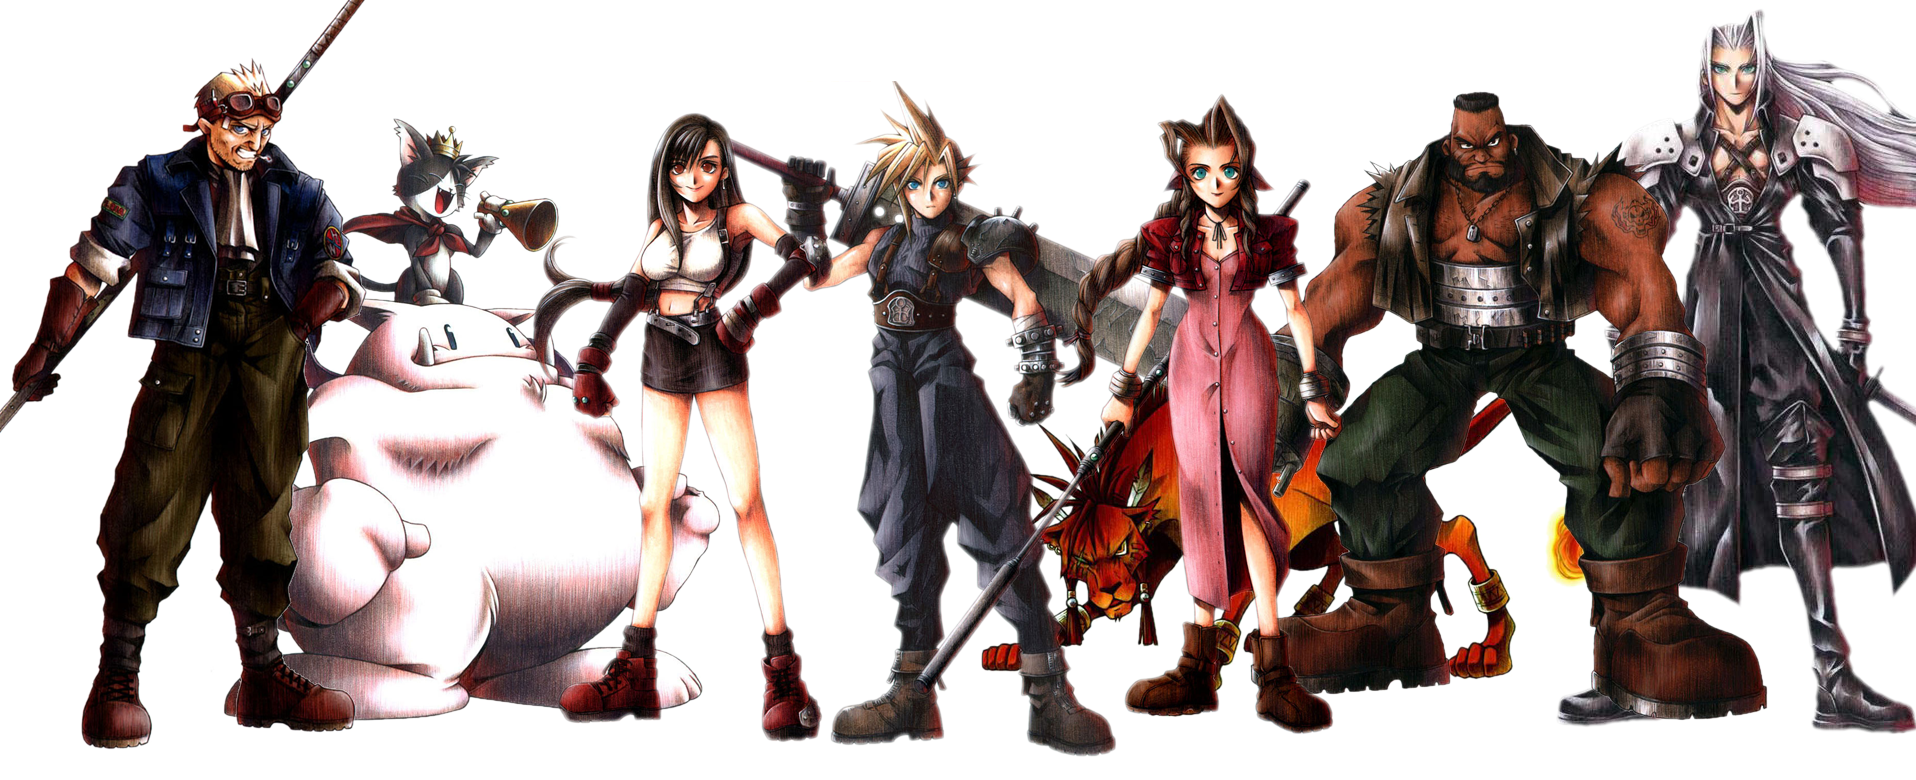 Final Fantasy 7 Characters Pictures Final Fantasy 7 Vii Cast Of Playable Characters Final Fantasy Characters Final Fantasy Final Fantasy Vii